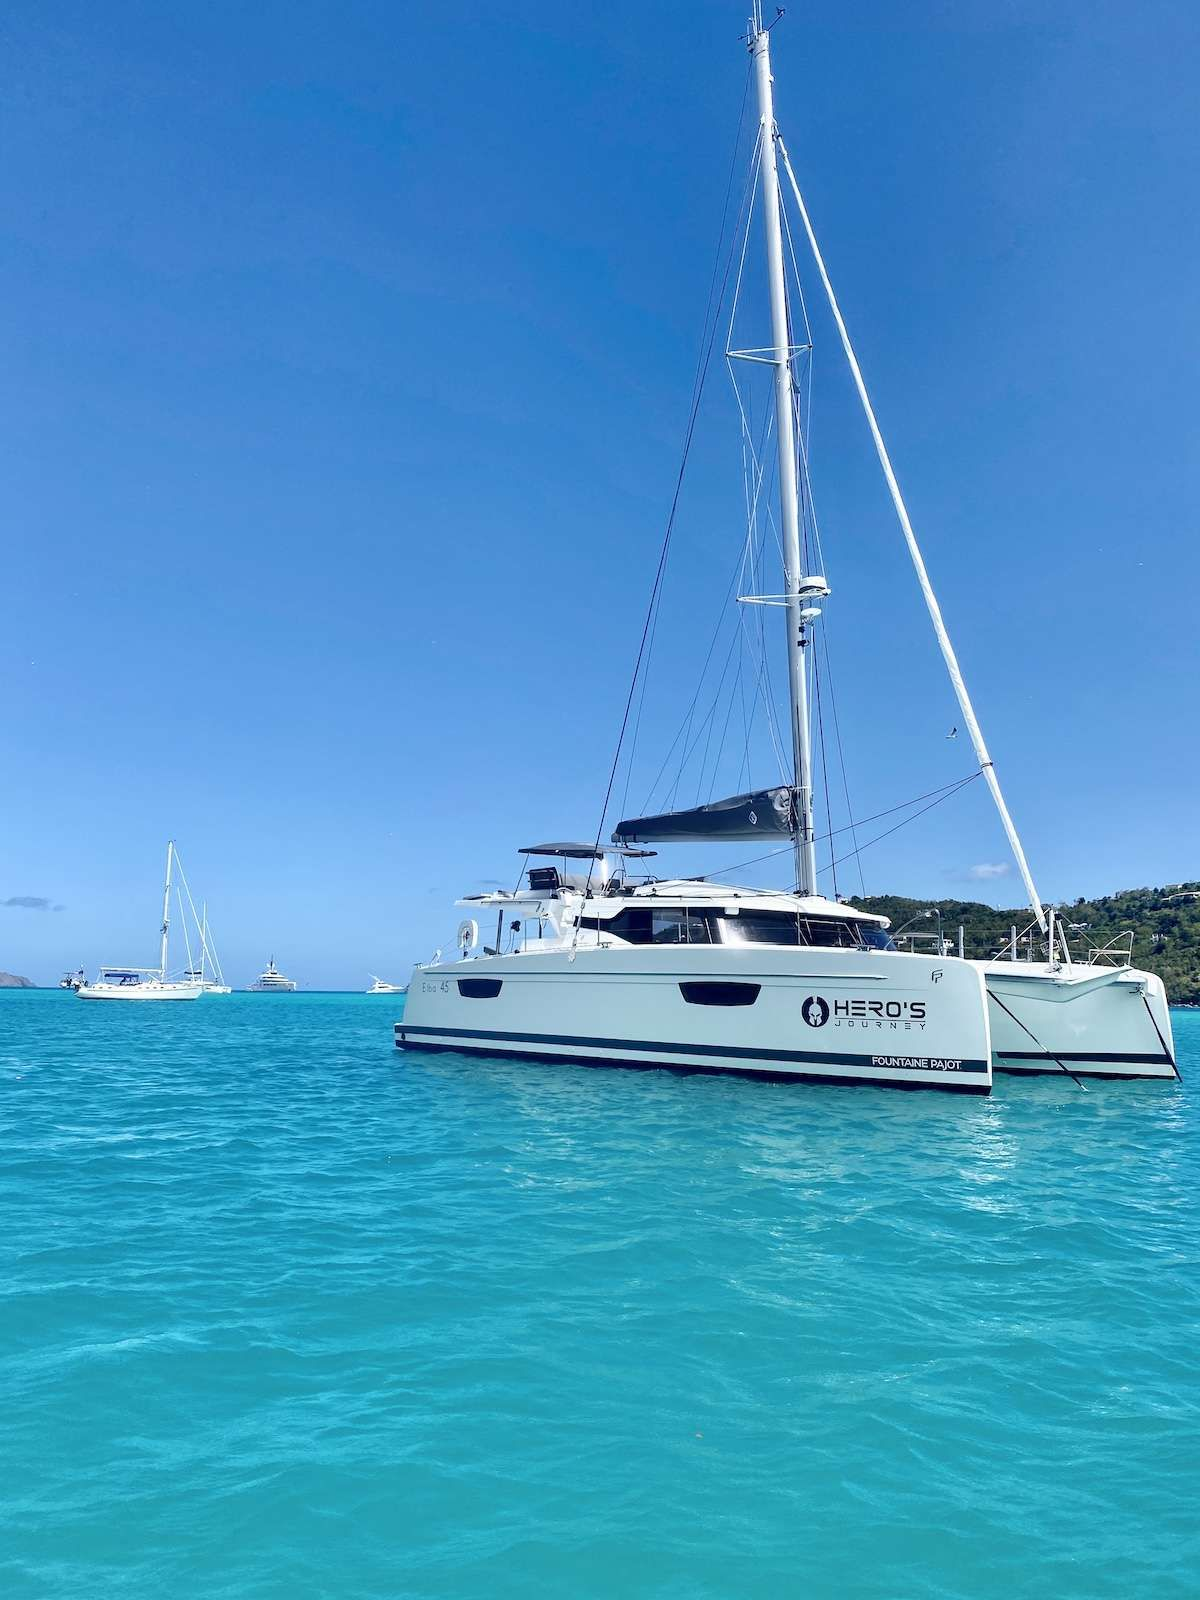 HERO'S JOURNEY Yacht Charter - Ritzy Charters